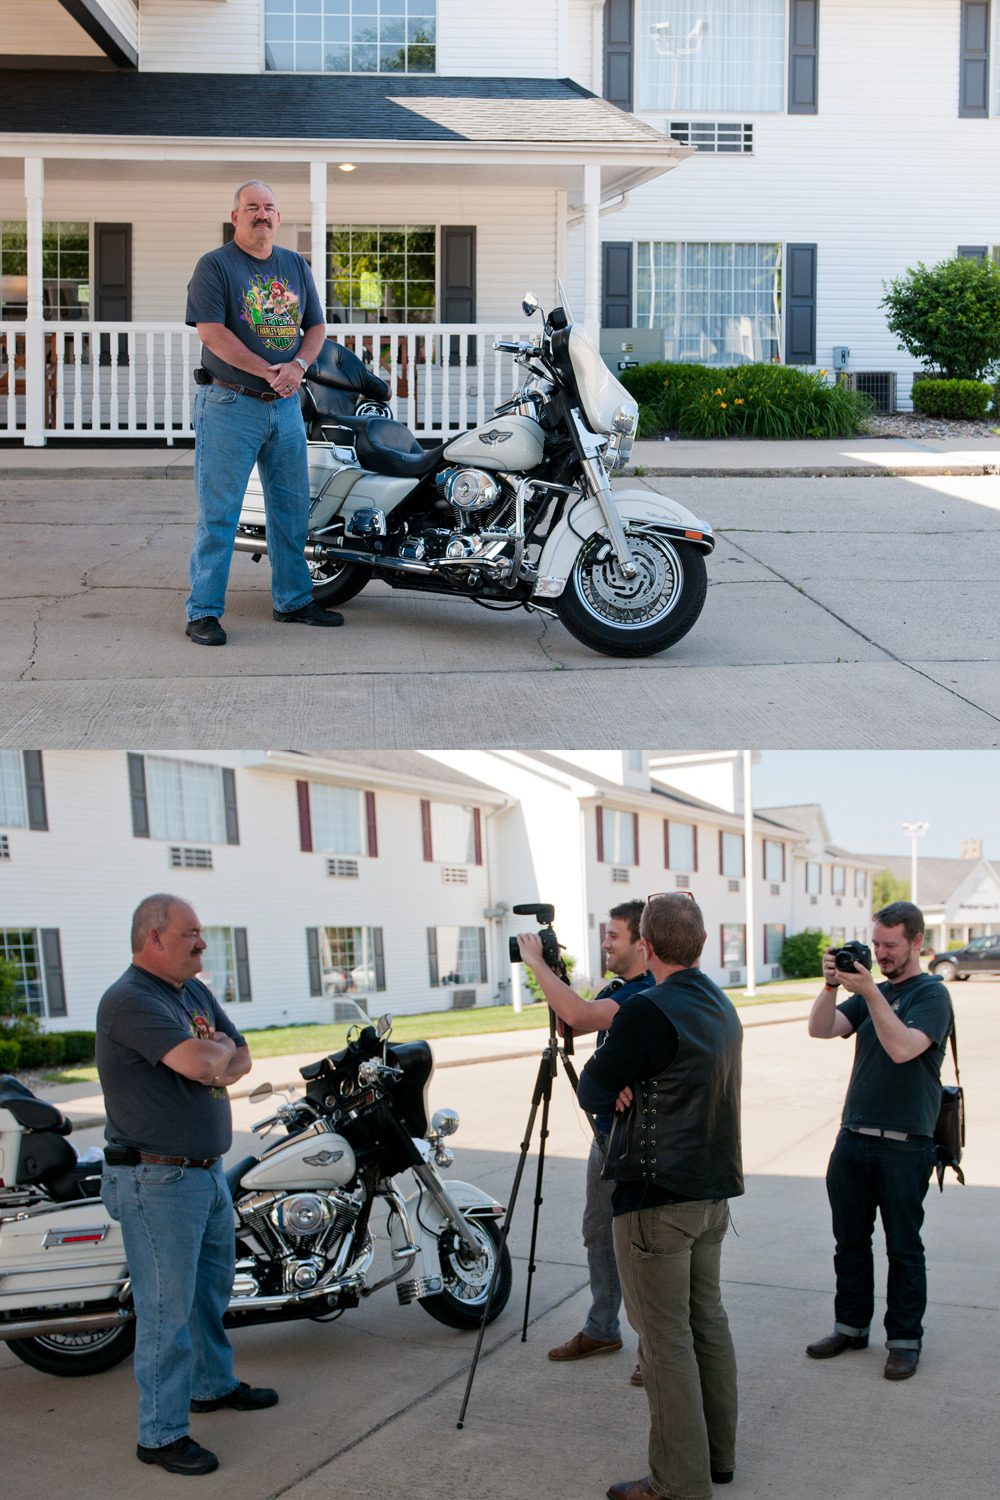 The Operation Route 66 team interviews Ken Hansel a firefighter we met outside of Springfield, MO. We've been talking to citizens who haven't served but want to deliver a message to our veterans. It's been very rewarding and we'll keep doing it as we head west! Check us out in Amarillo, Tucamcara, Albuquerque, Santa Fe, Flagstaff, Kingman, Joshua Tree, and Los Angeles/ Santa Monica.